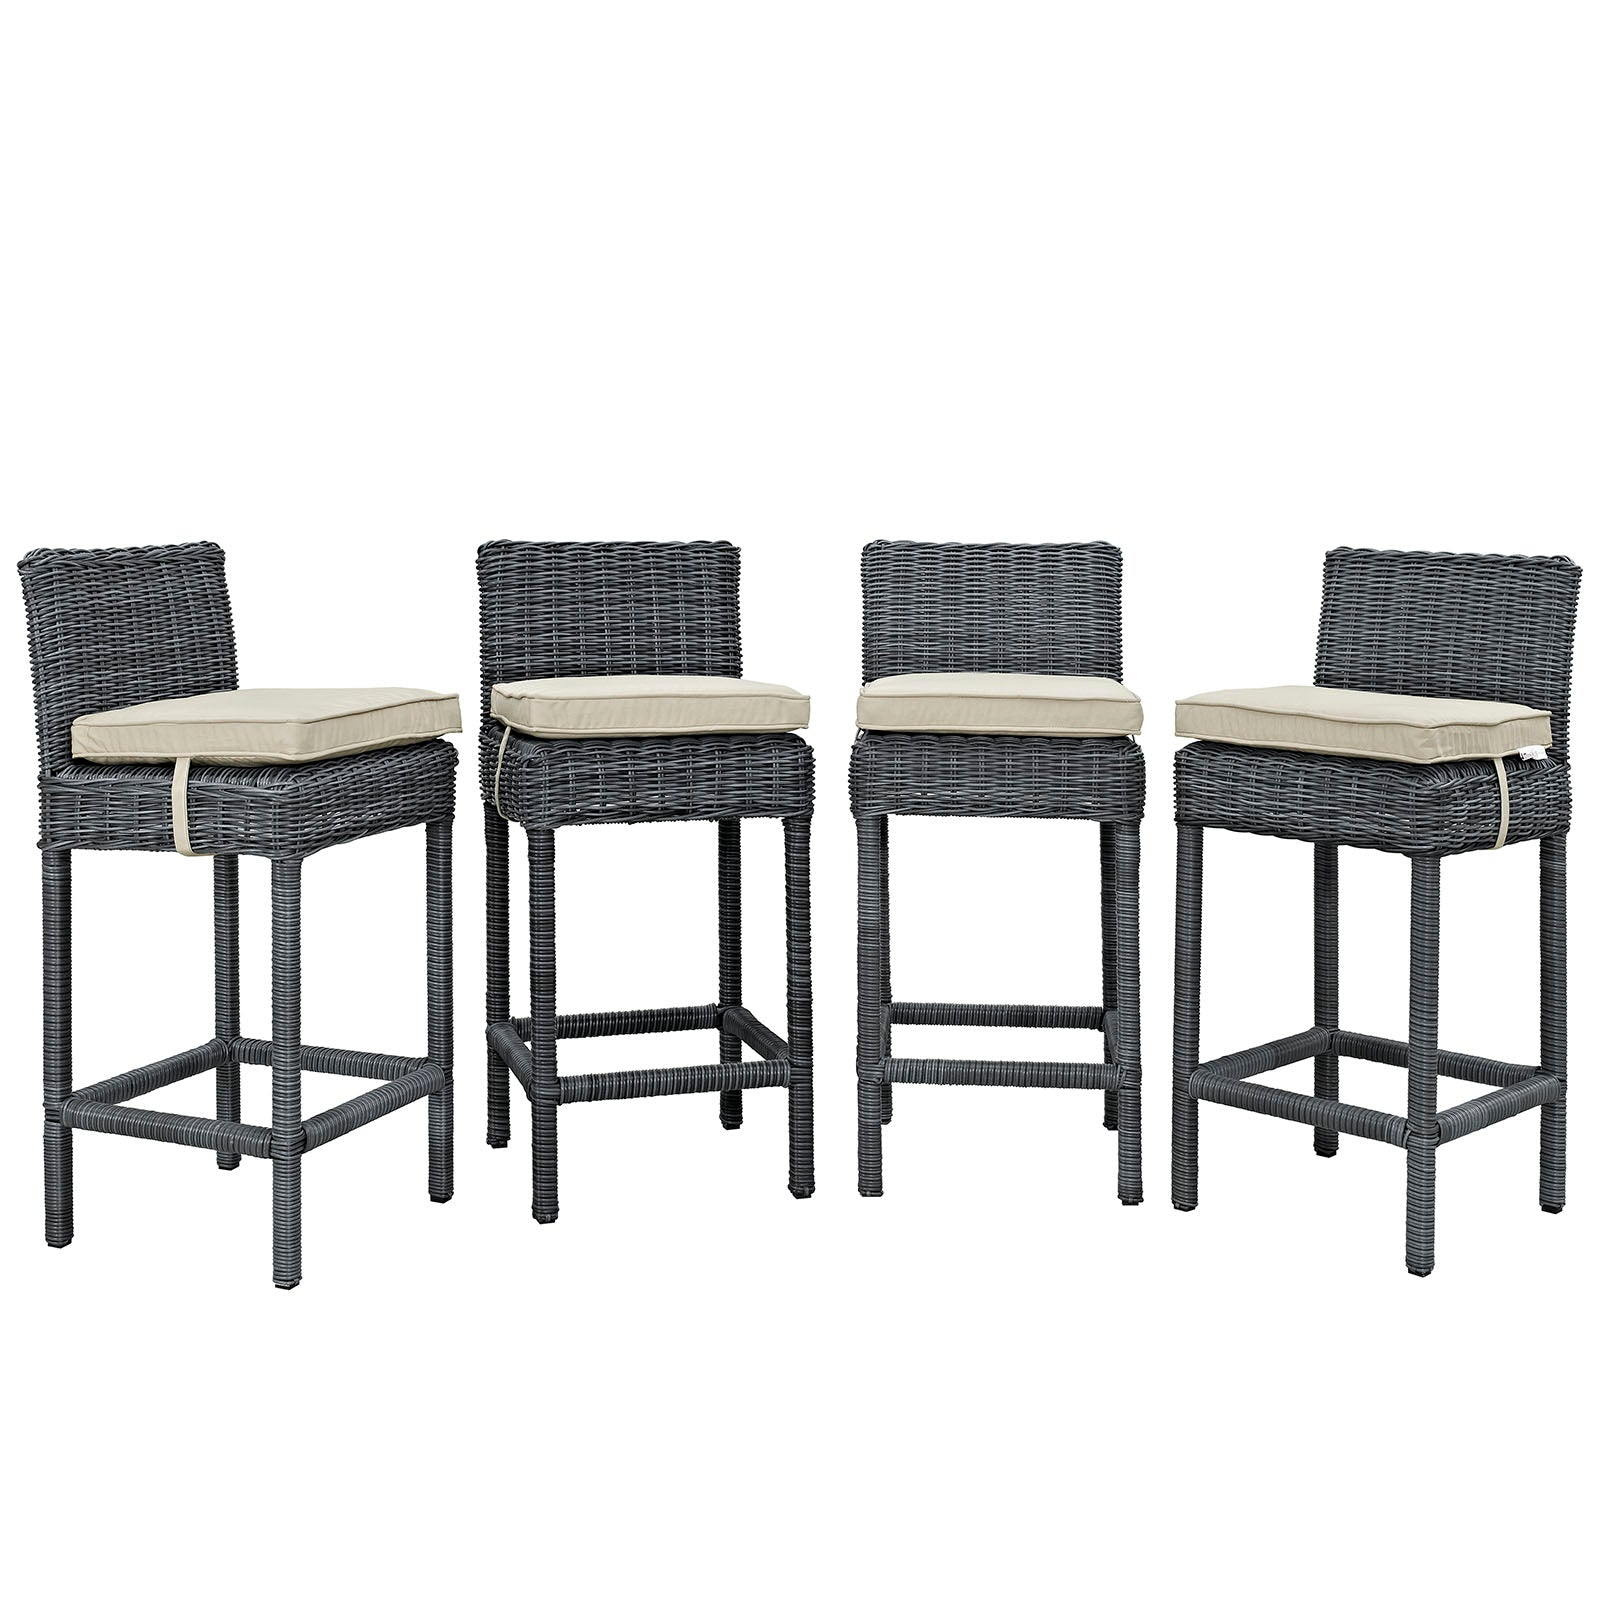 Summon Bar Stool Outdoor Patio Sunbrella® Set of 4